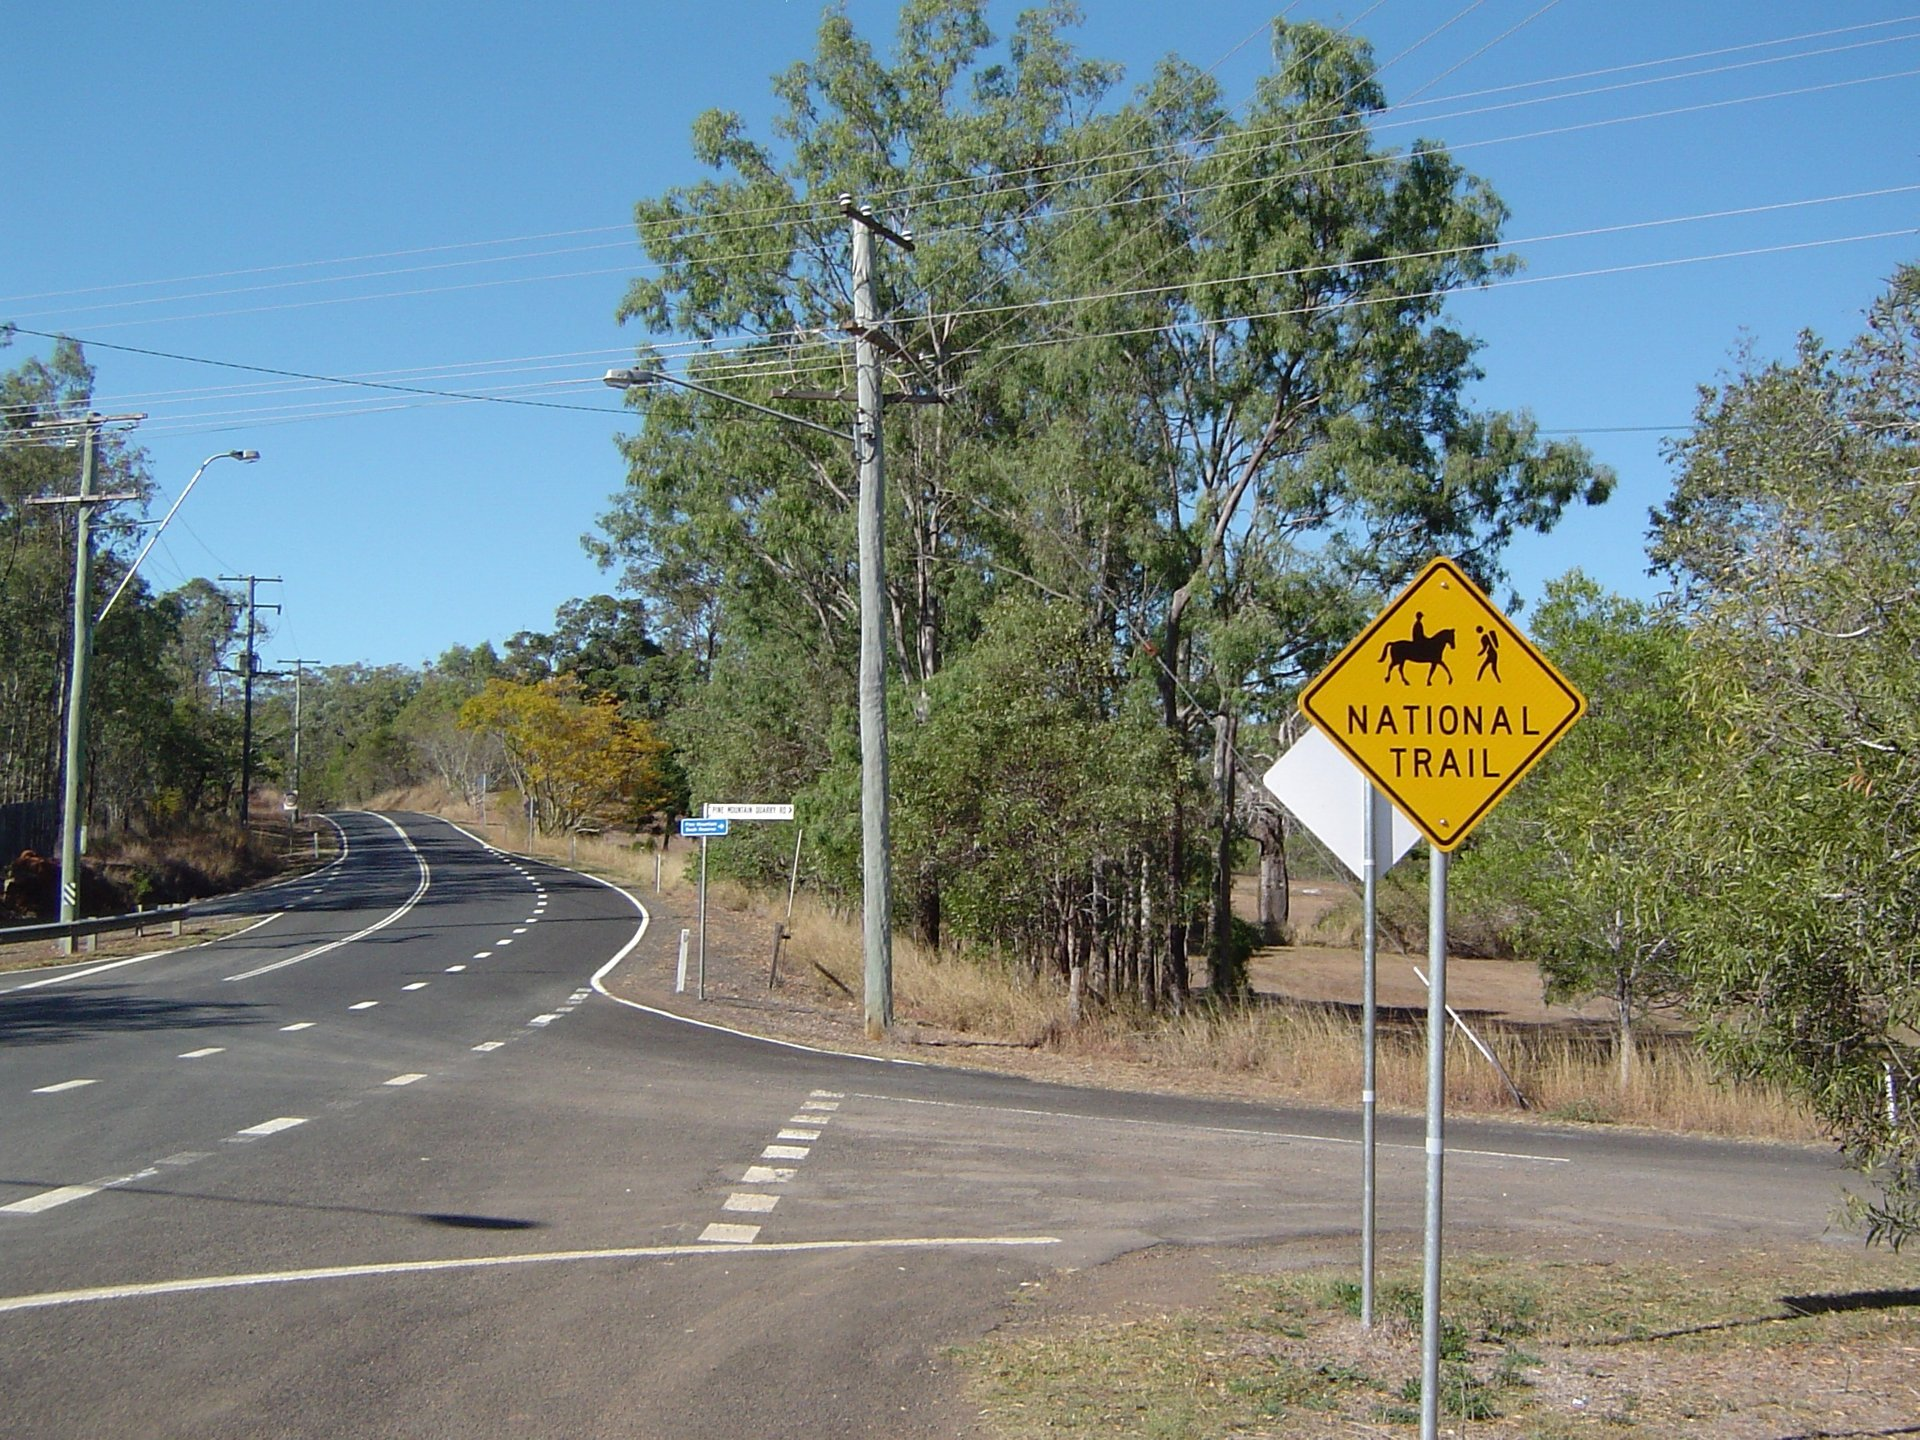 Pine Mountain Road and Bicentennial National Trail at Pine Mountain, City of Ipswich, Queensland, Australia 2019